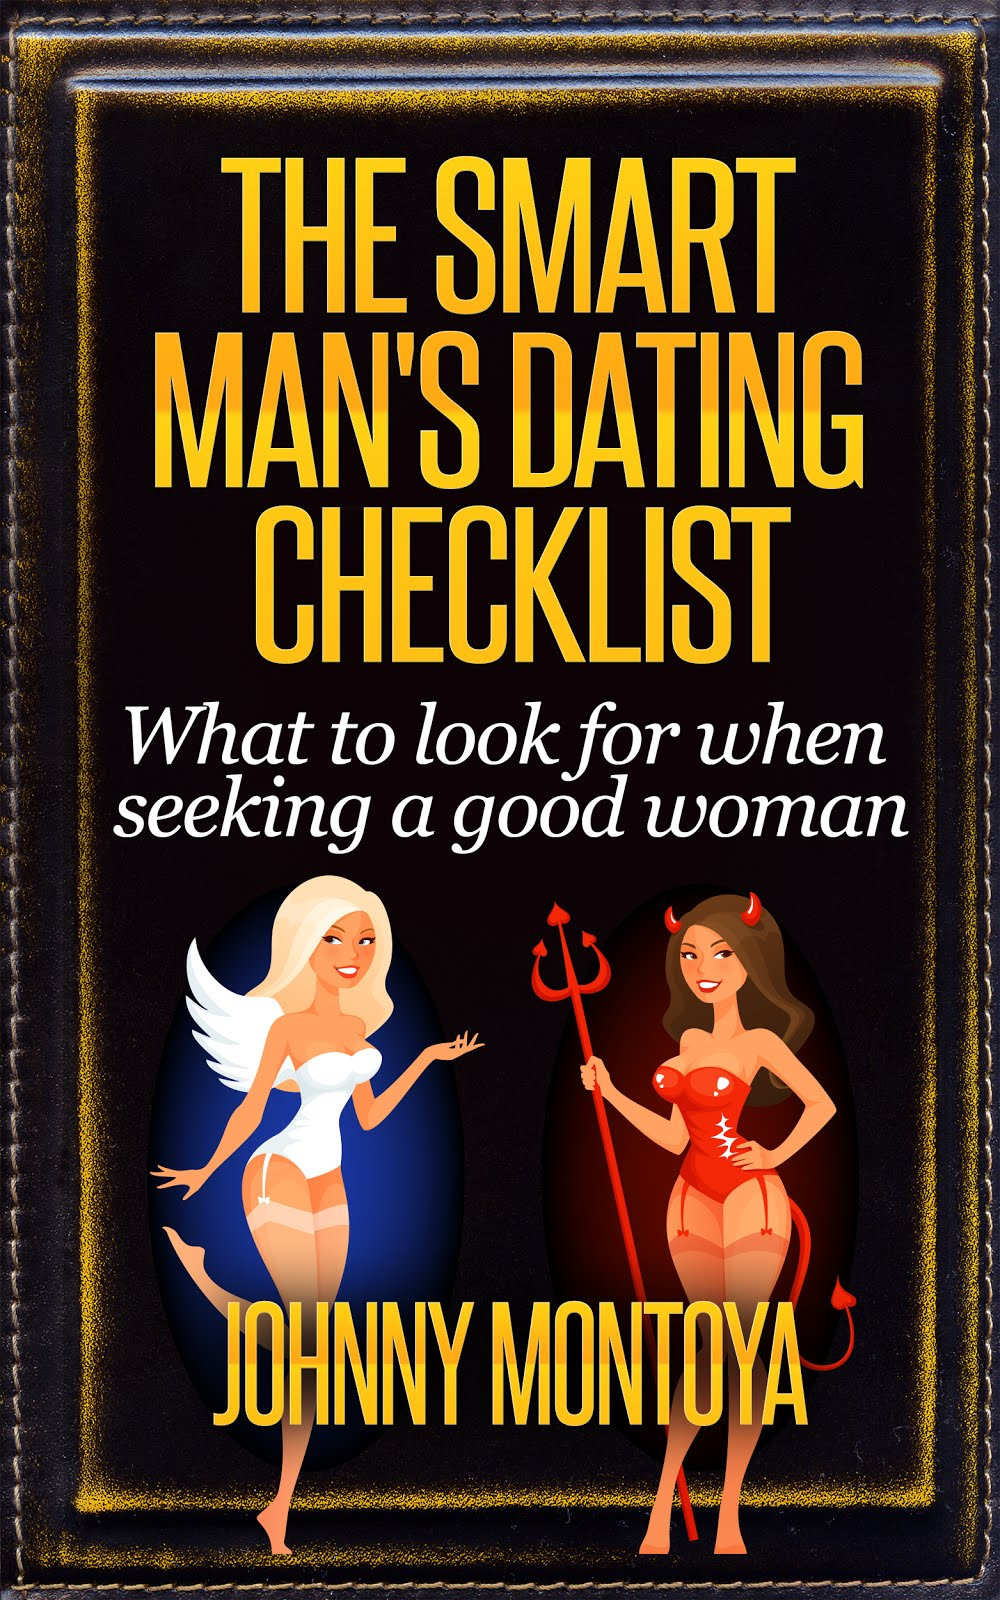 The Smart Man's Dating Checklist